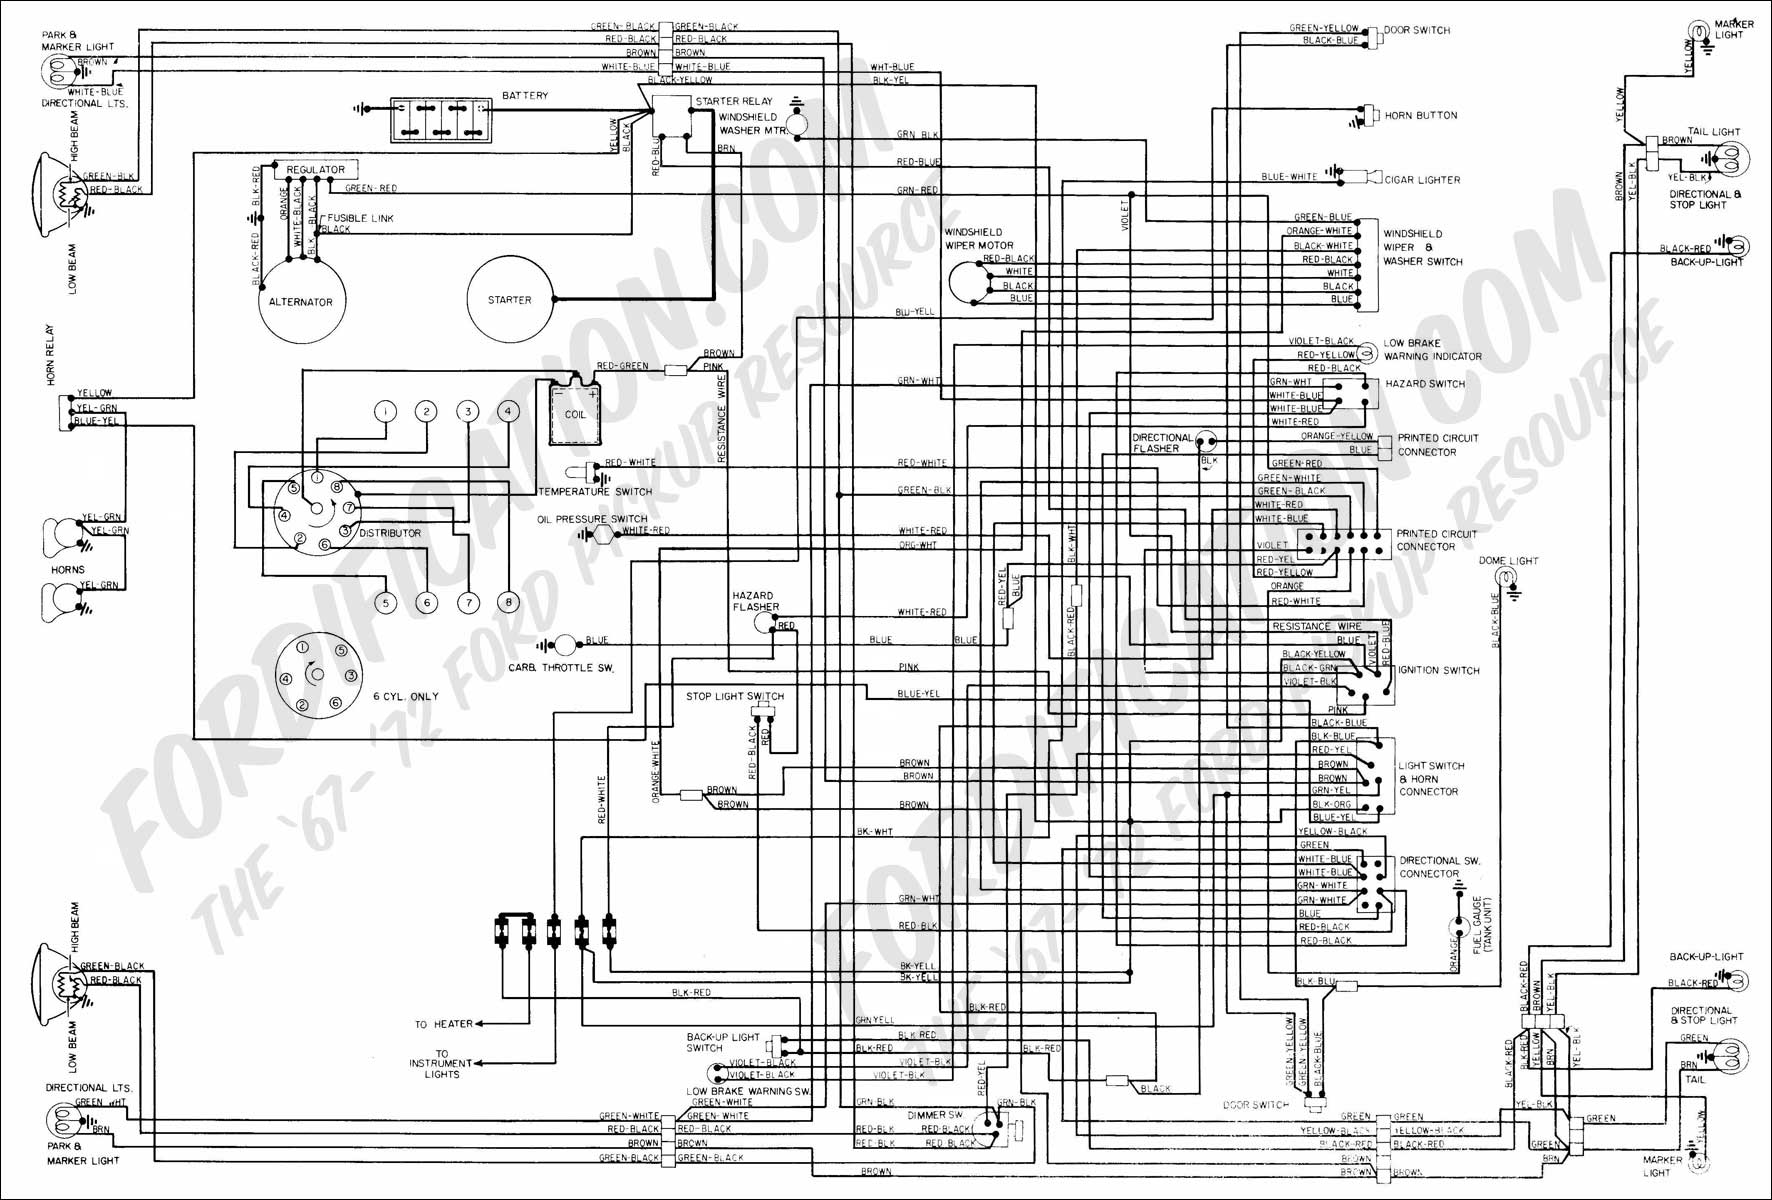 1994 ford f150 wiring schematic wiring diagram Ford Diagrams Schematics 1973 1979 ford truck wiring diagrams schematics fordification ford diagrams schematics